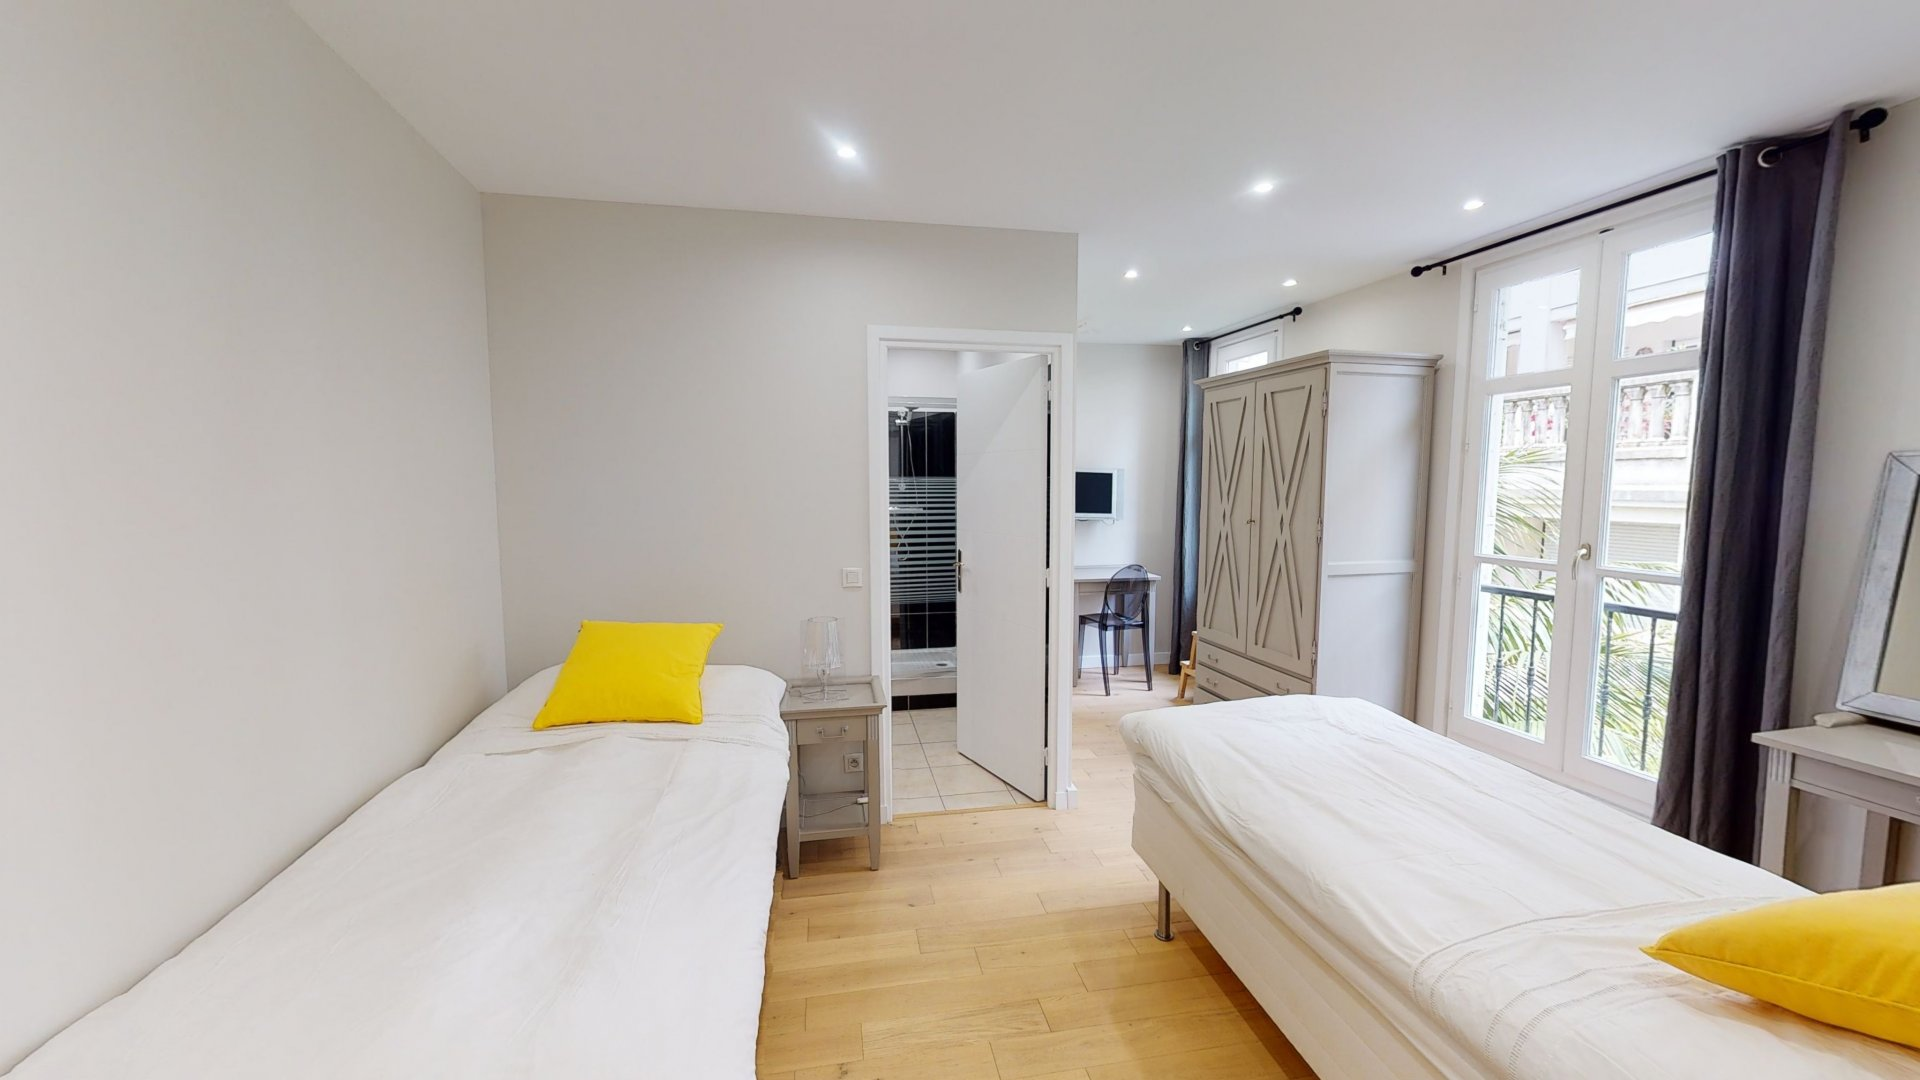 SOLE AGENT - Unique Town House in the very heart of Cannes